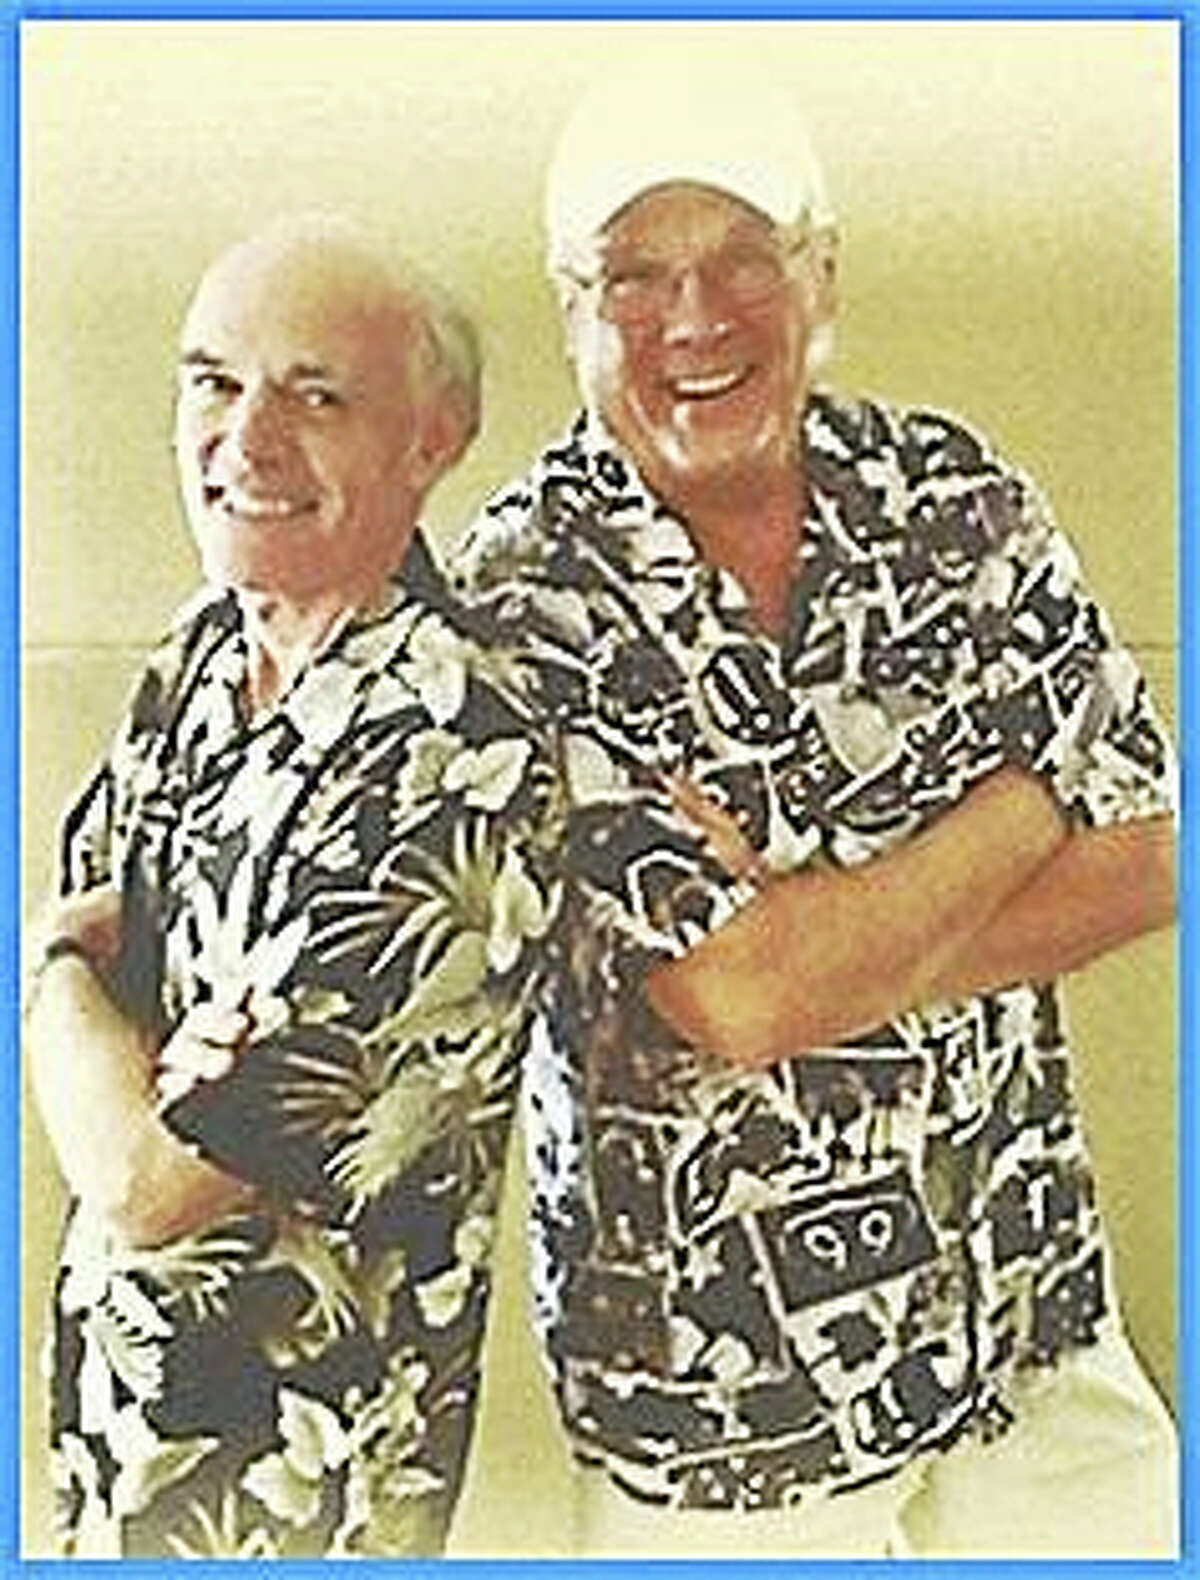 SUBMITTED PHOTOTHE ELDERLY BROTHERSGuilford: The Elderly Brothers, T-Bone Stankus, Brian Gillie, will perform 1950s, '60s bandstand repertoire at 7 p.m. April 27 at the Guilford Free Library, 67 Park St. RSVP: at the reference desk, www.guilfordfreelibrary.org or 203-453-8282.